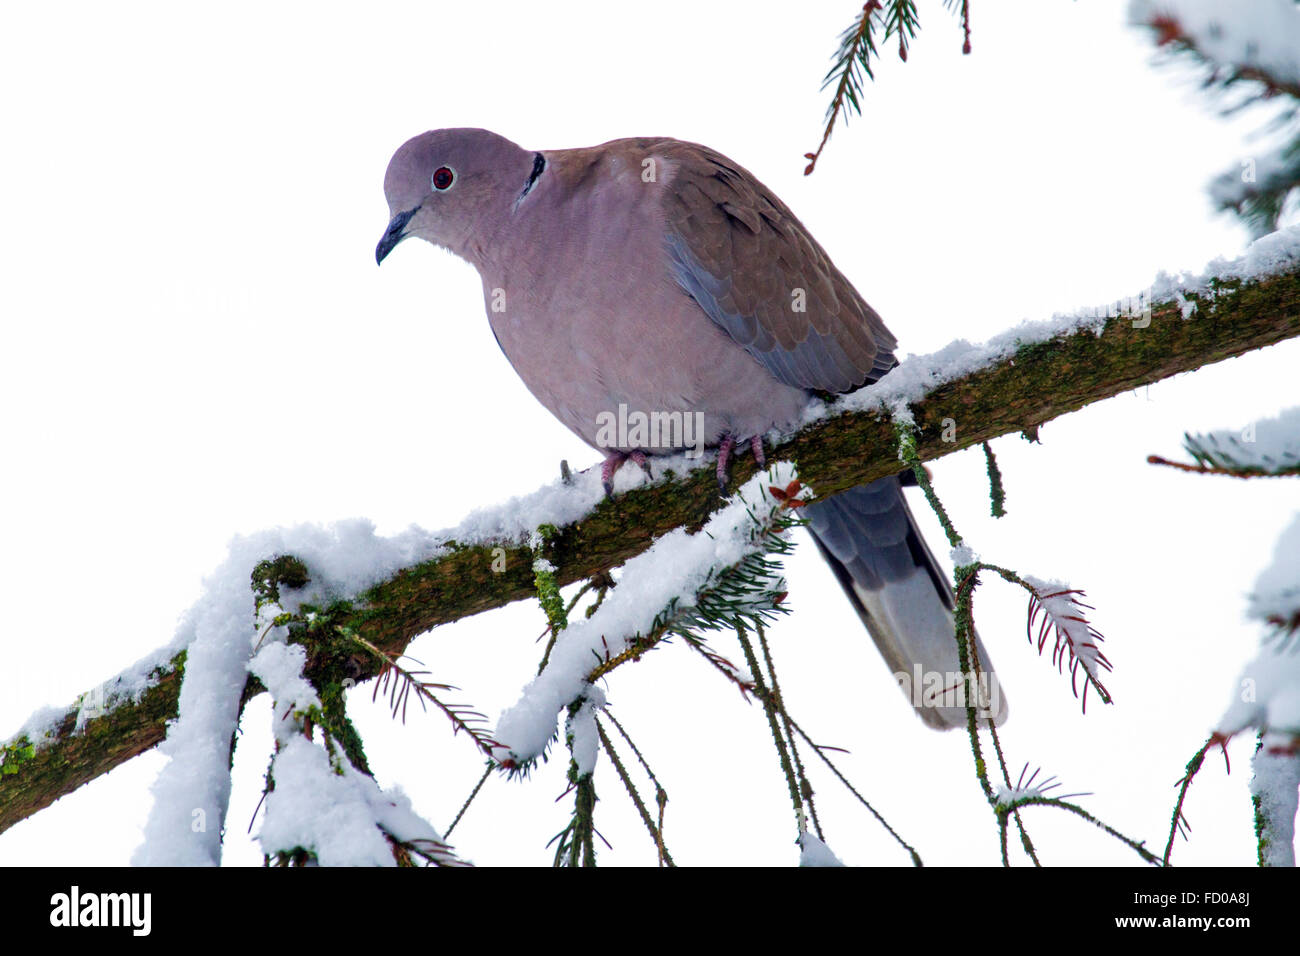 Eurasian collared dove (Streptopelia decaocto) perched in pine tree in the snow in winter - Stock Image